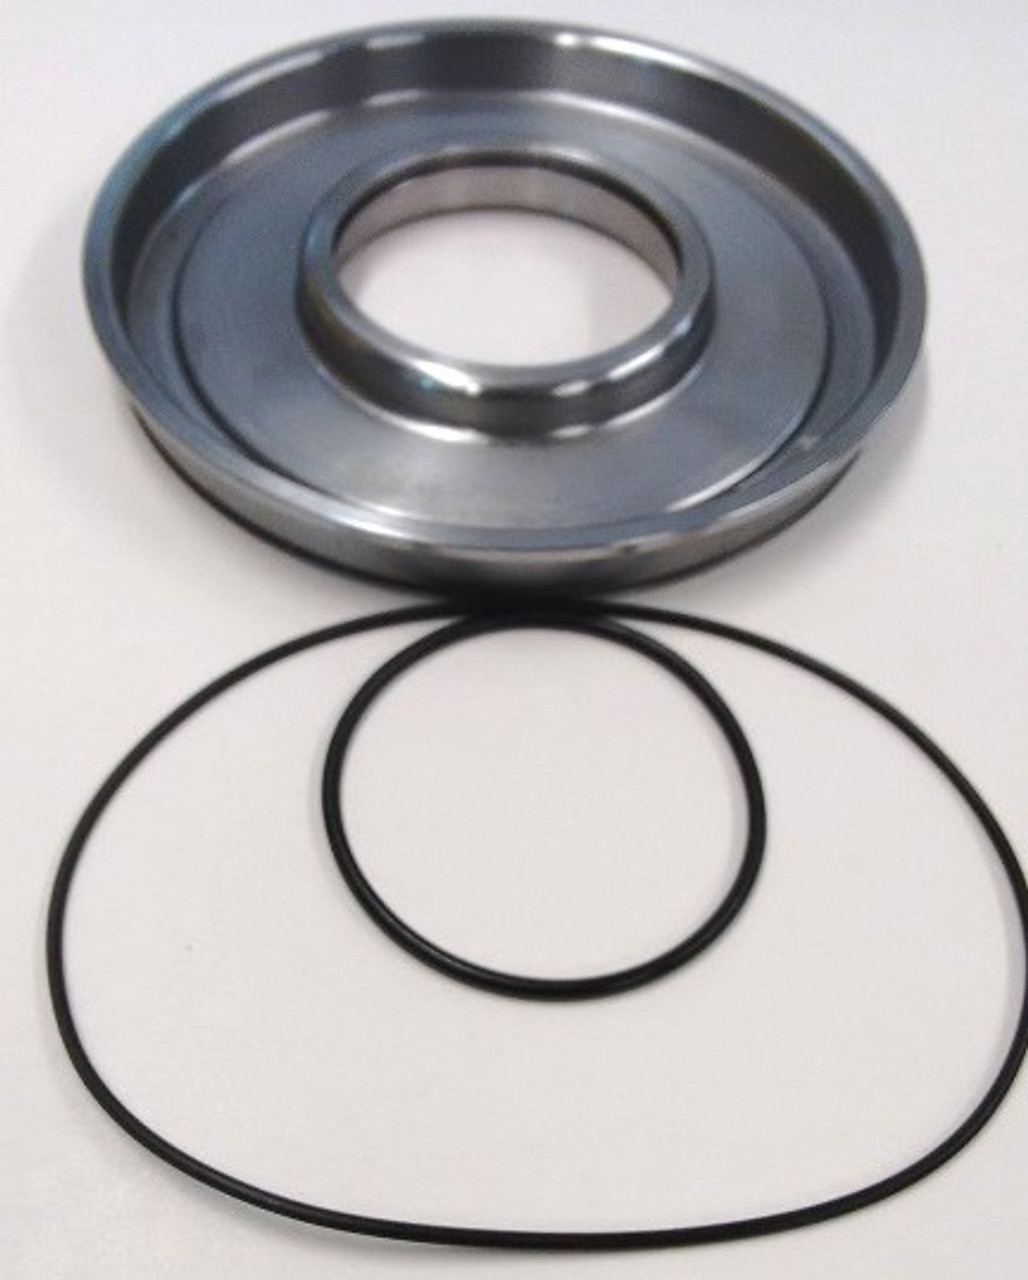 This is a new design piston made from steel with 2 Viton O-Rings  Top view